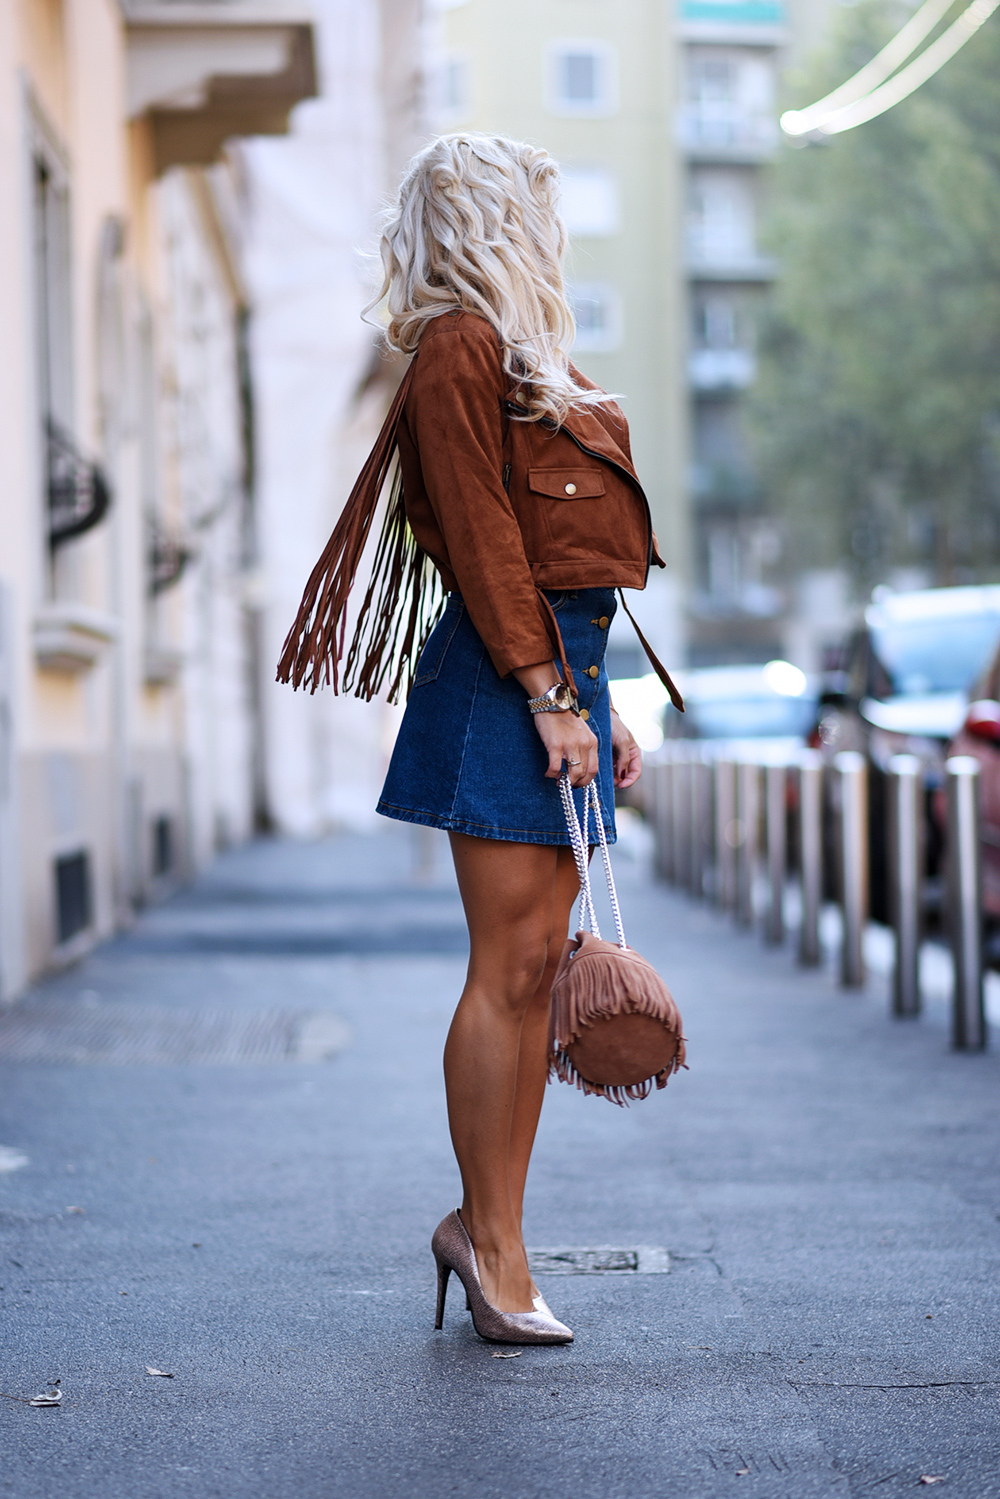 Milan Fashion Week 2015, tracolla con frange, Arcadia bags, borse frange camoscio, suede jacket, gonna di jeans, fringes trends fall 2015 - outfit fashion blogger It-Girl by Eleonora Petrella